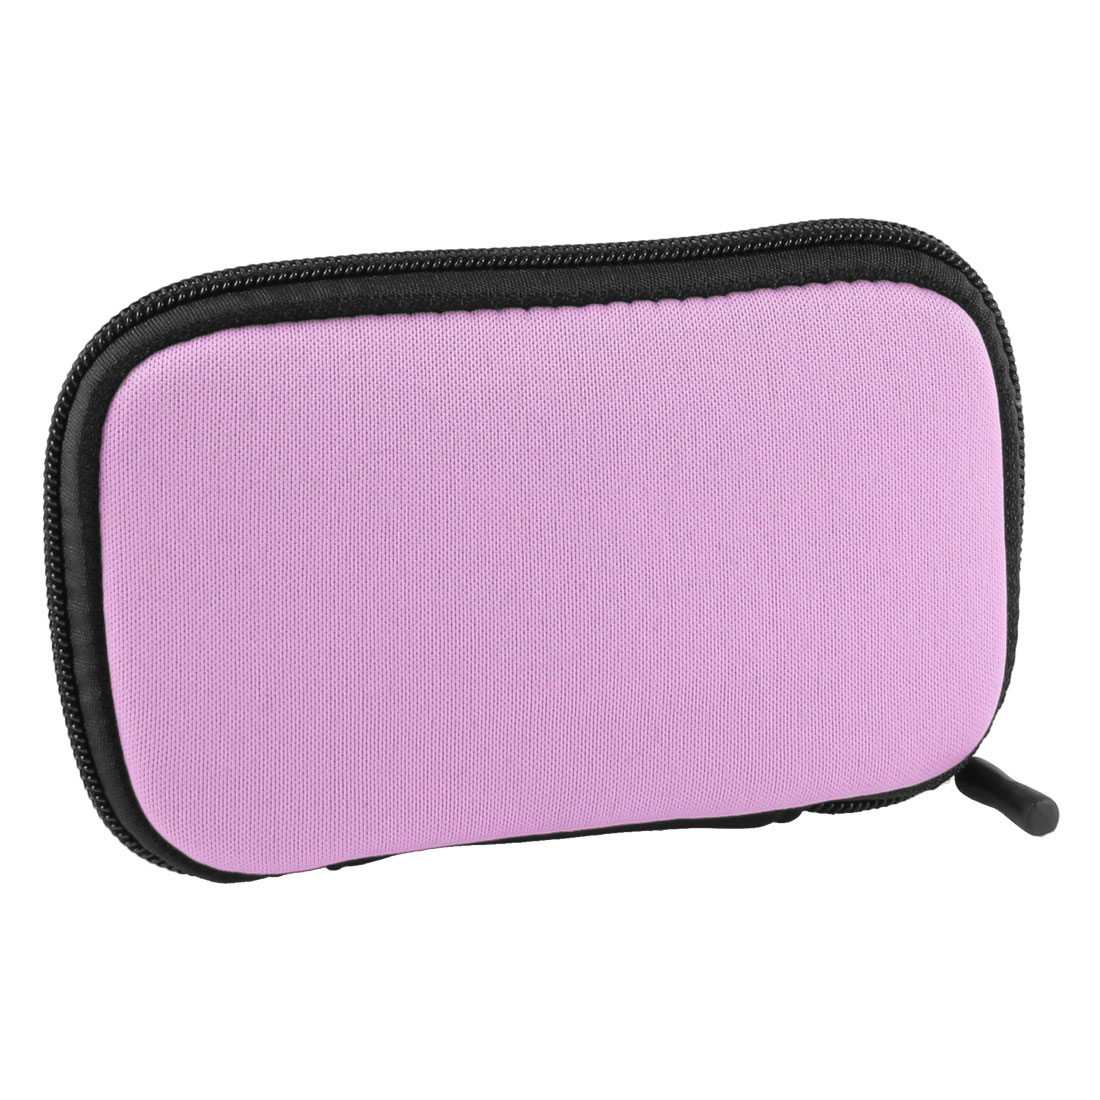 "Zip-up Neoprene Sleeve Bag Pouch Carry Case Pink for 2.5"" HDD Hard Drive Disk"